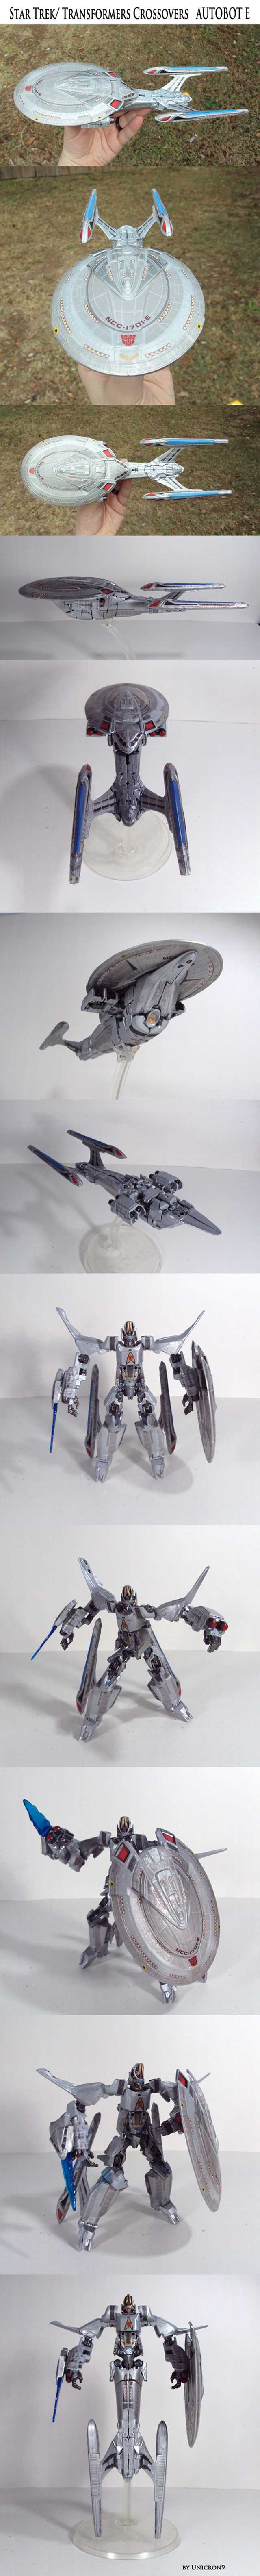 uss-enterprise-transformer